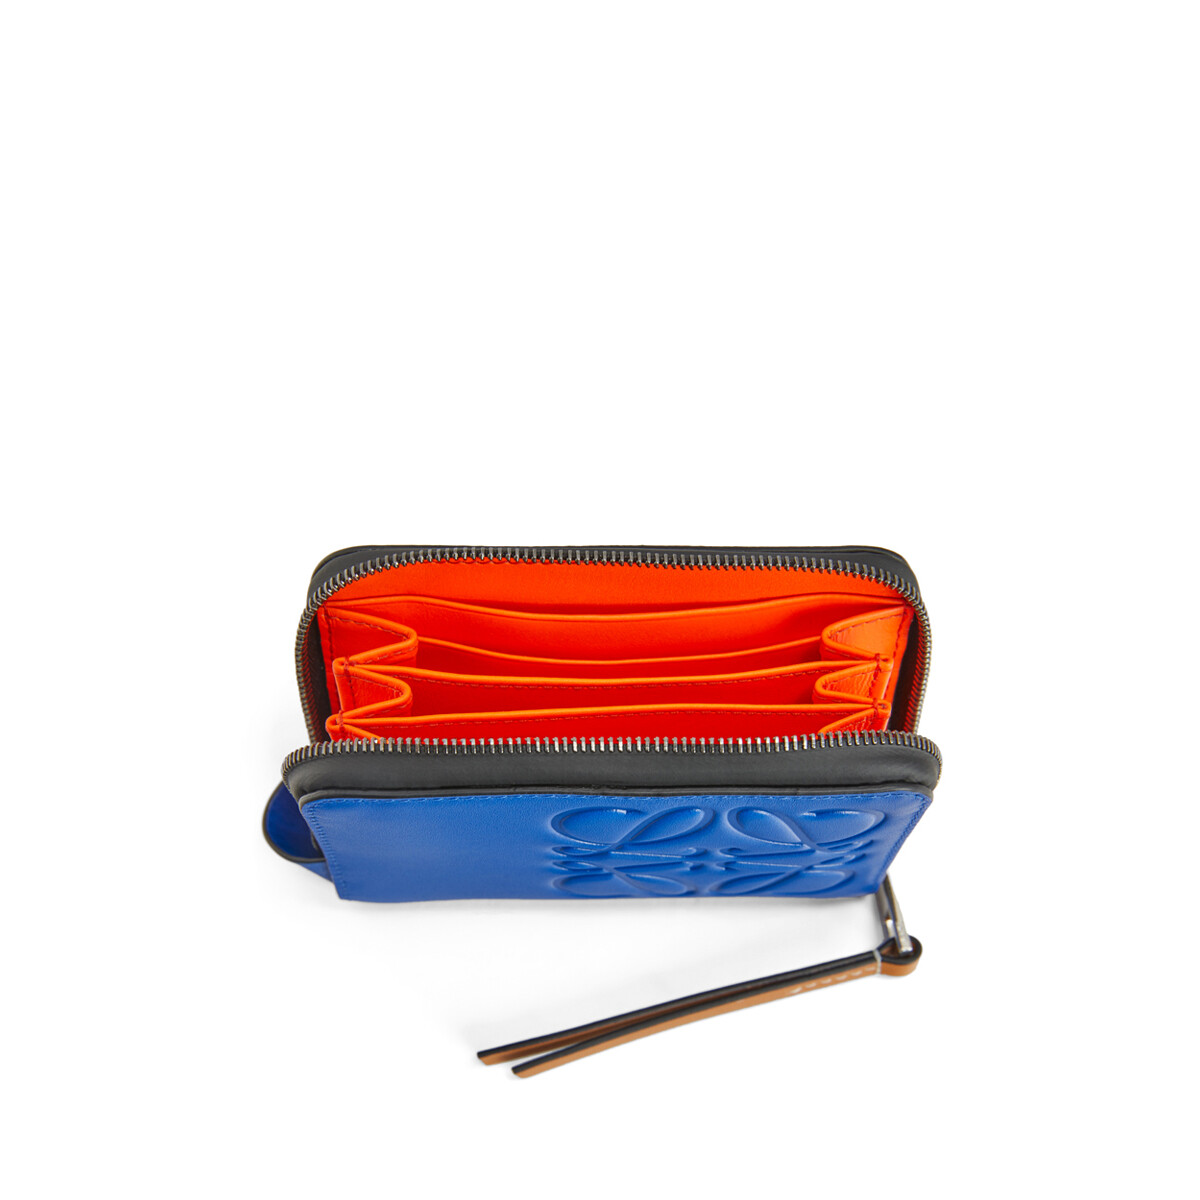 LOEWE Brand 6 Card Zip Wallet Electric Blue/Orange front